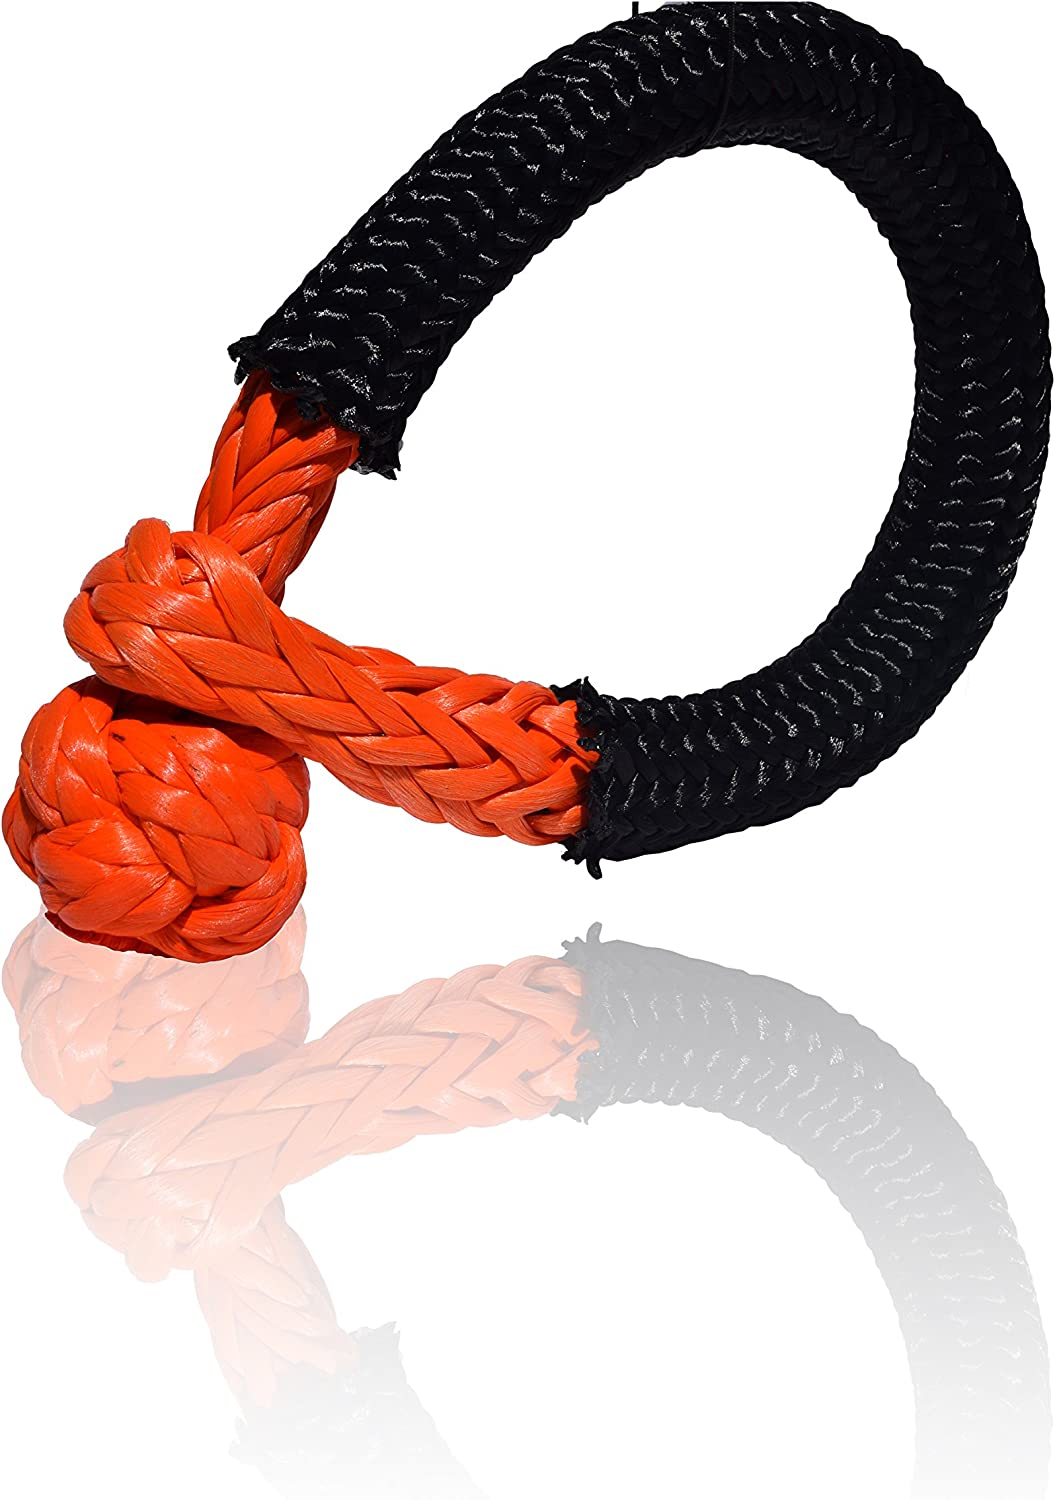 QIQU Synthetic Soft Shackle for Boating ATV UTV SUV 4X4 Truck Recovery Together with Recovery Rope 1 Pack 1//2, Orange